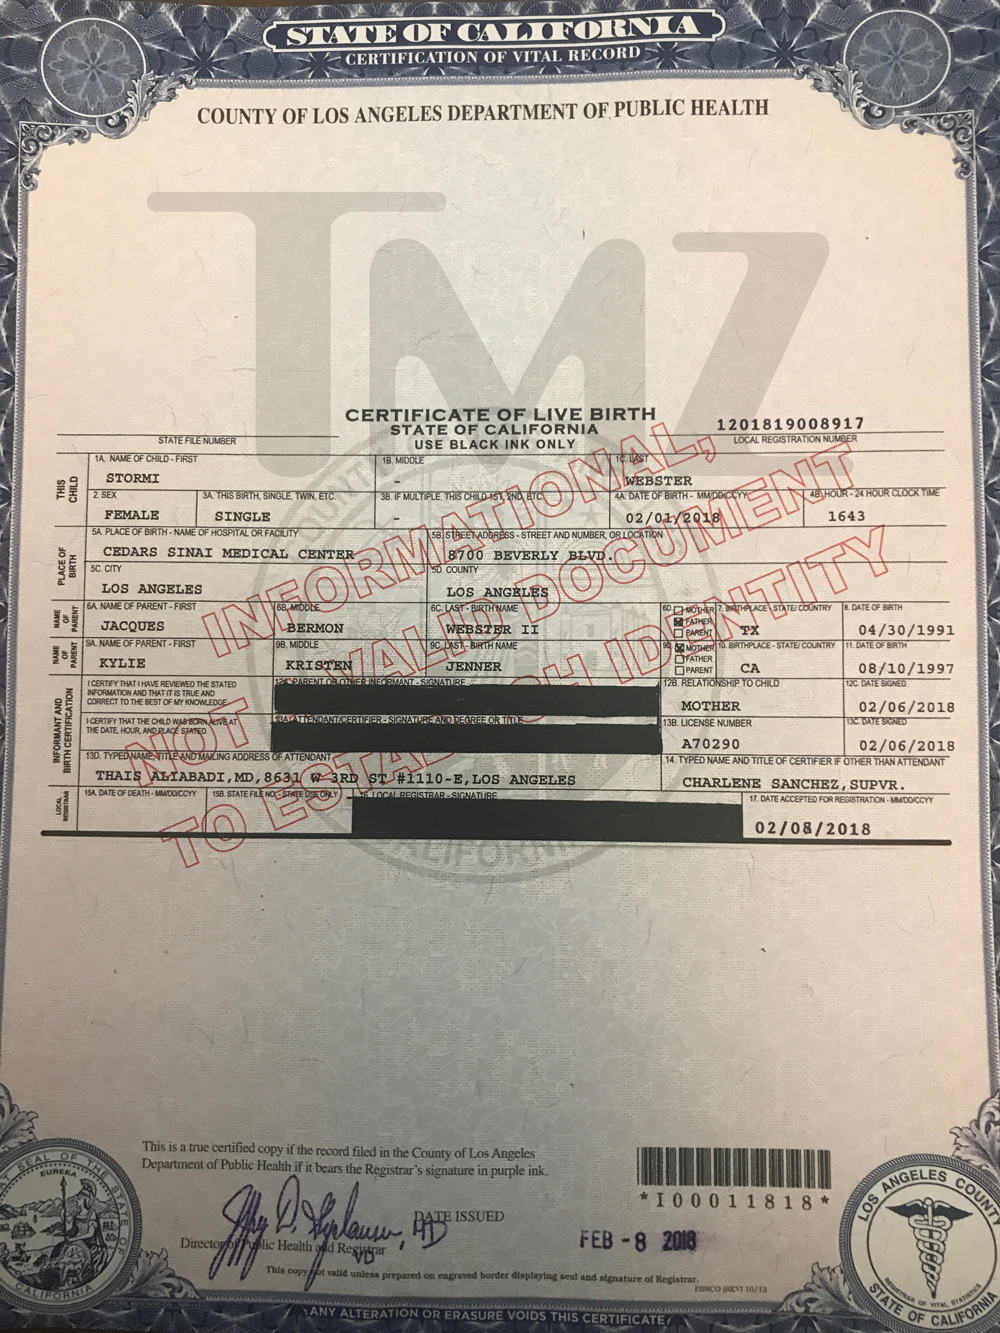 The kardashians tmz kylie jenner and travis scott let the cat out of the bag on stormis first name but now we have more deets from her birth certificate like her full name aiddatafo Images